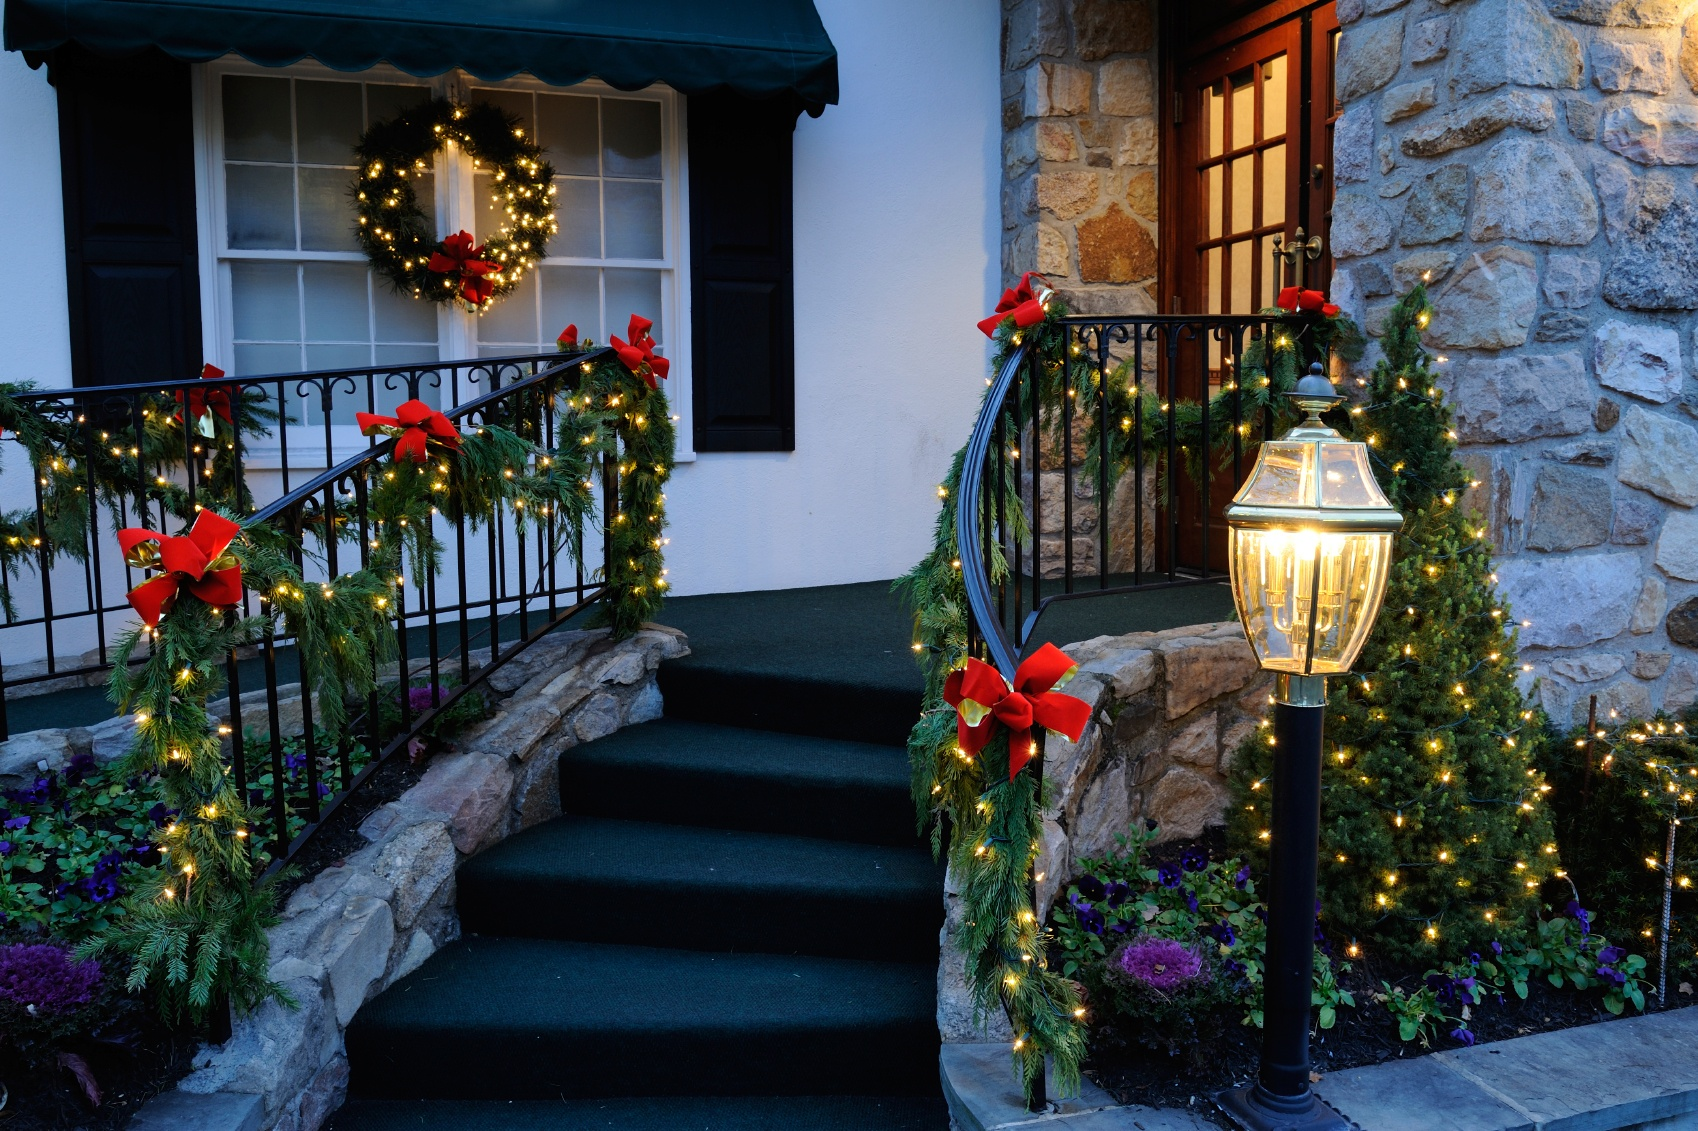 porch railing christmas ideas - Christmas Porch Light Decorations